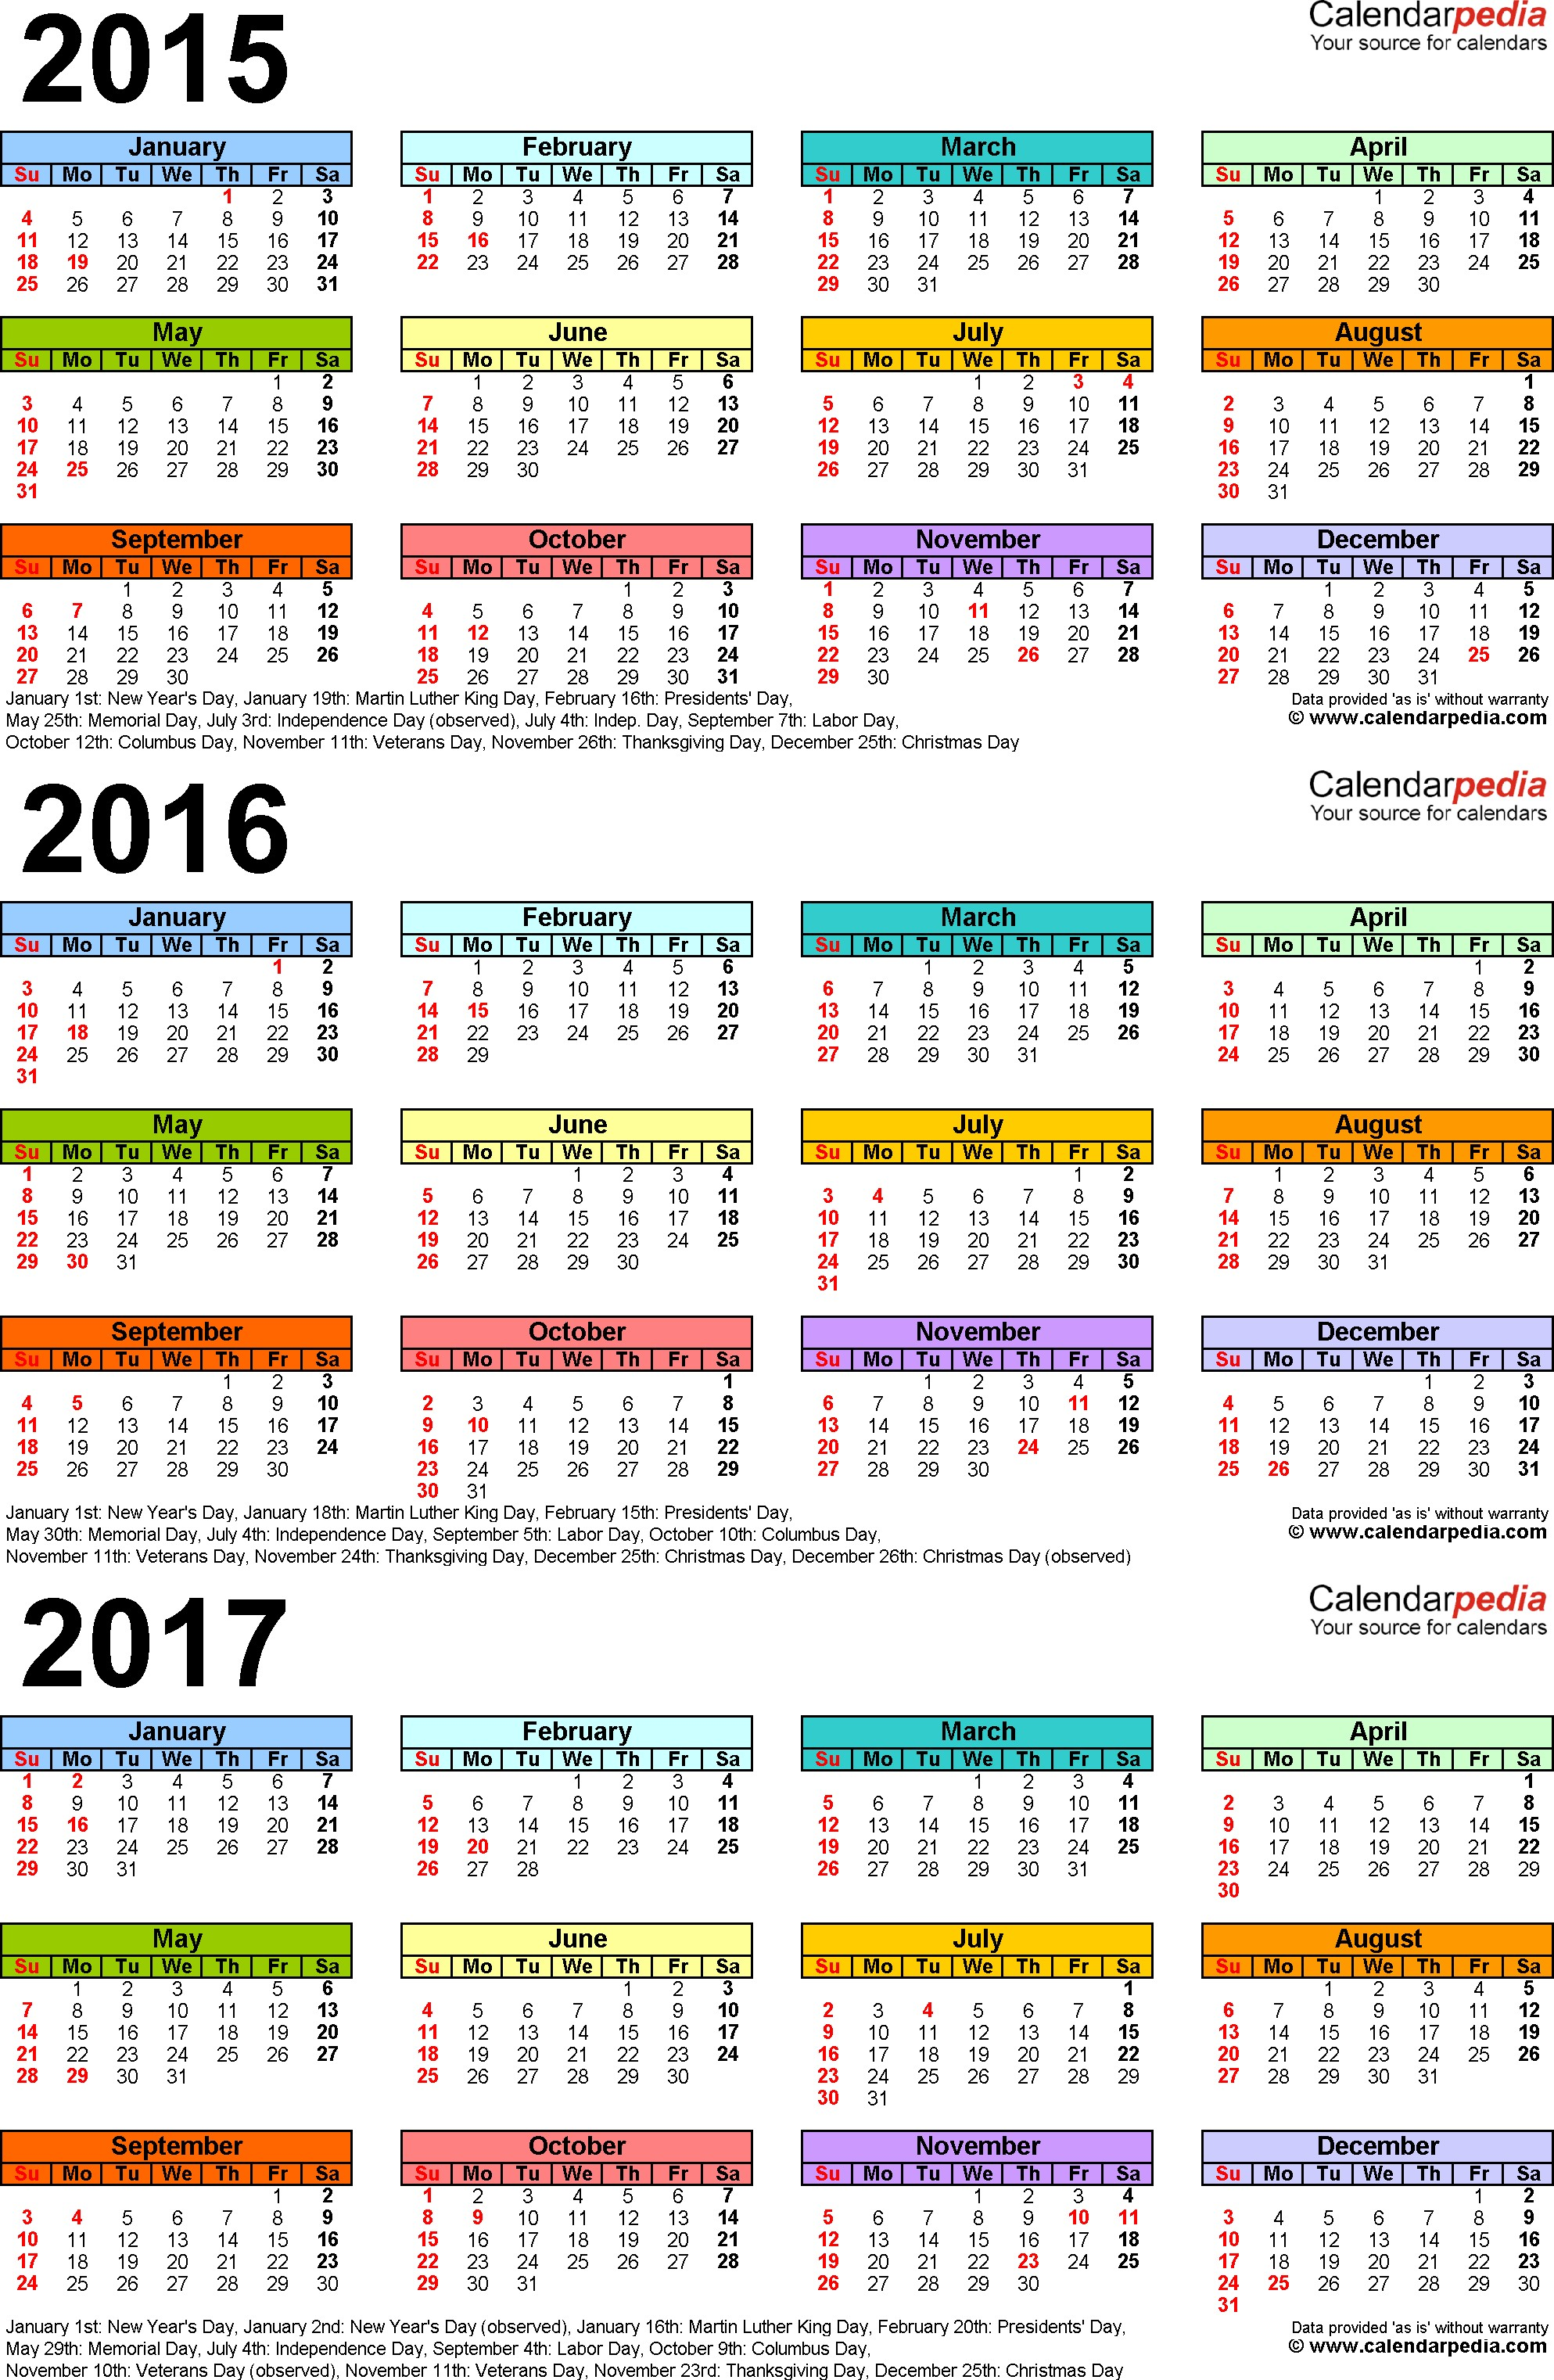 Calendario 2019 Con Festivos En Mexico Más Recientemente Liberado 2015 2016 2017 Calendar 4 Three Year Printable Pdf Calendars